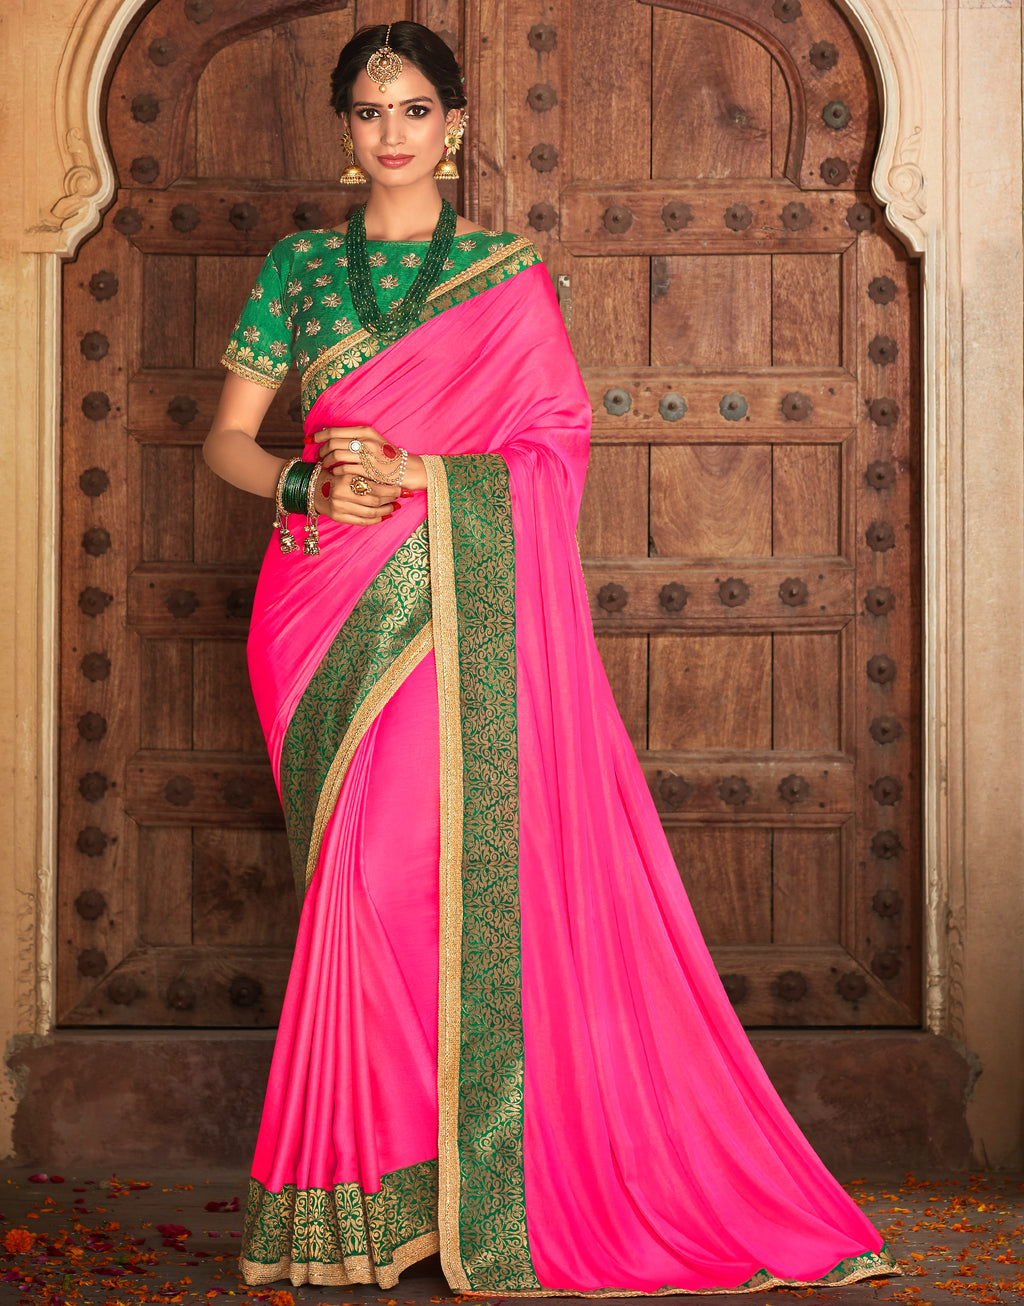 Rani Pink Color Crepe Georgette Designer Party Wear Sarees  Anyra Suhani Catlog SJ-10366